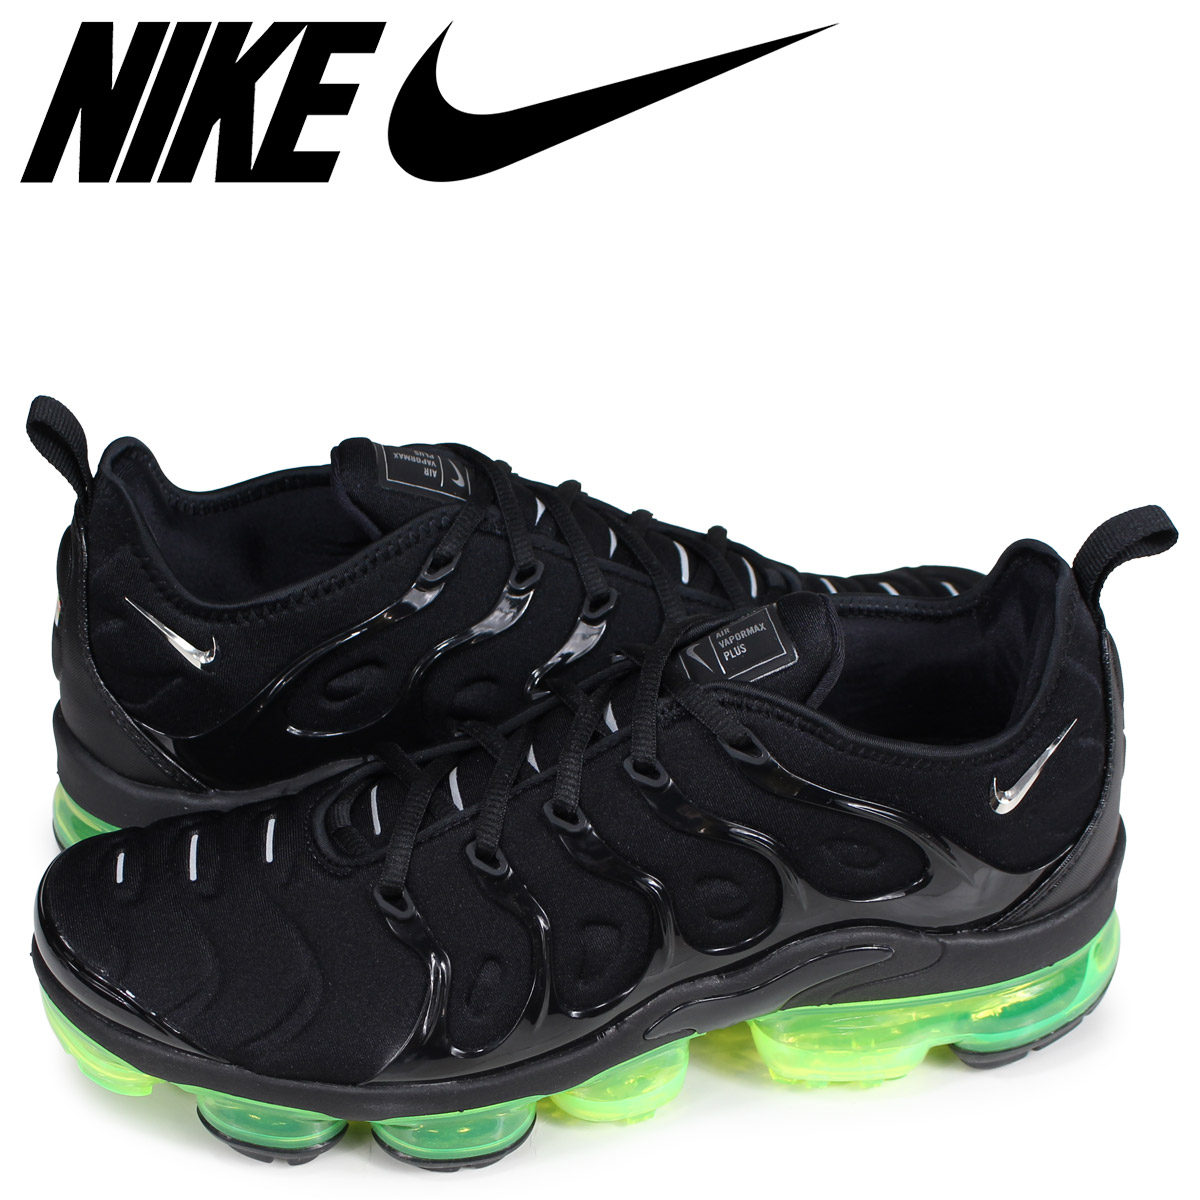 504e8a28e8d99 NIKE AIR VAPORMAX PLUS Nike vapor max plus sneakers men gap Dis black  924